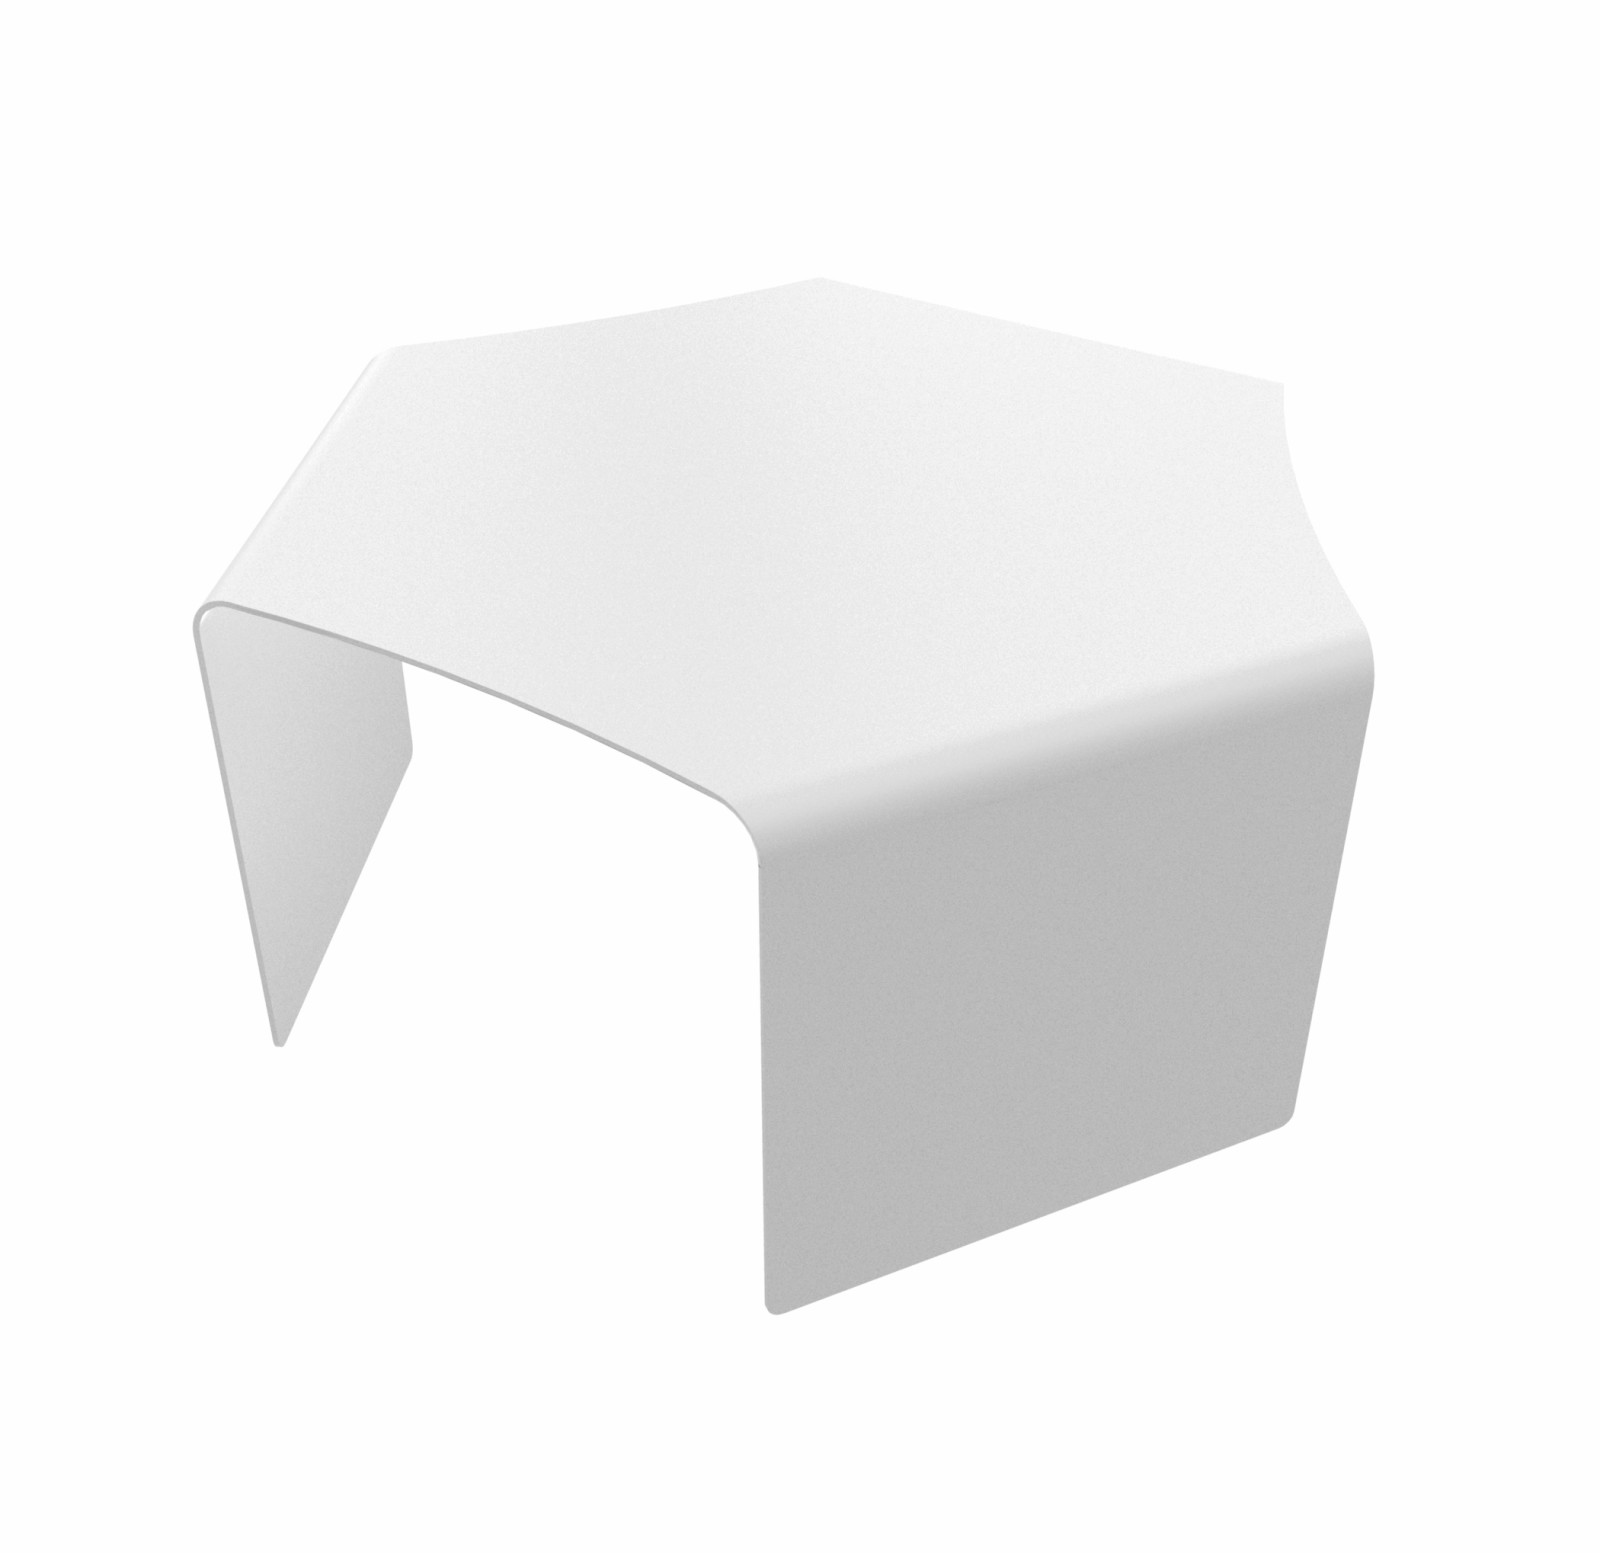 Ponant Upper Solo Low Table White - 01 RAL 9016